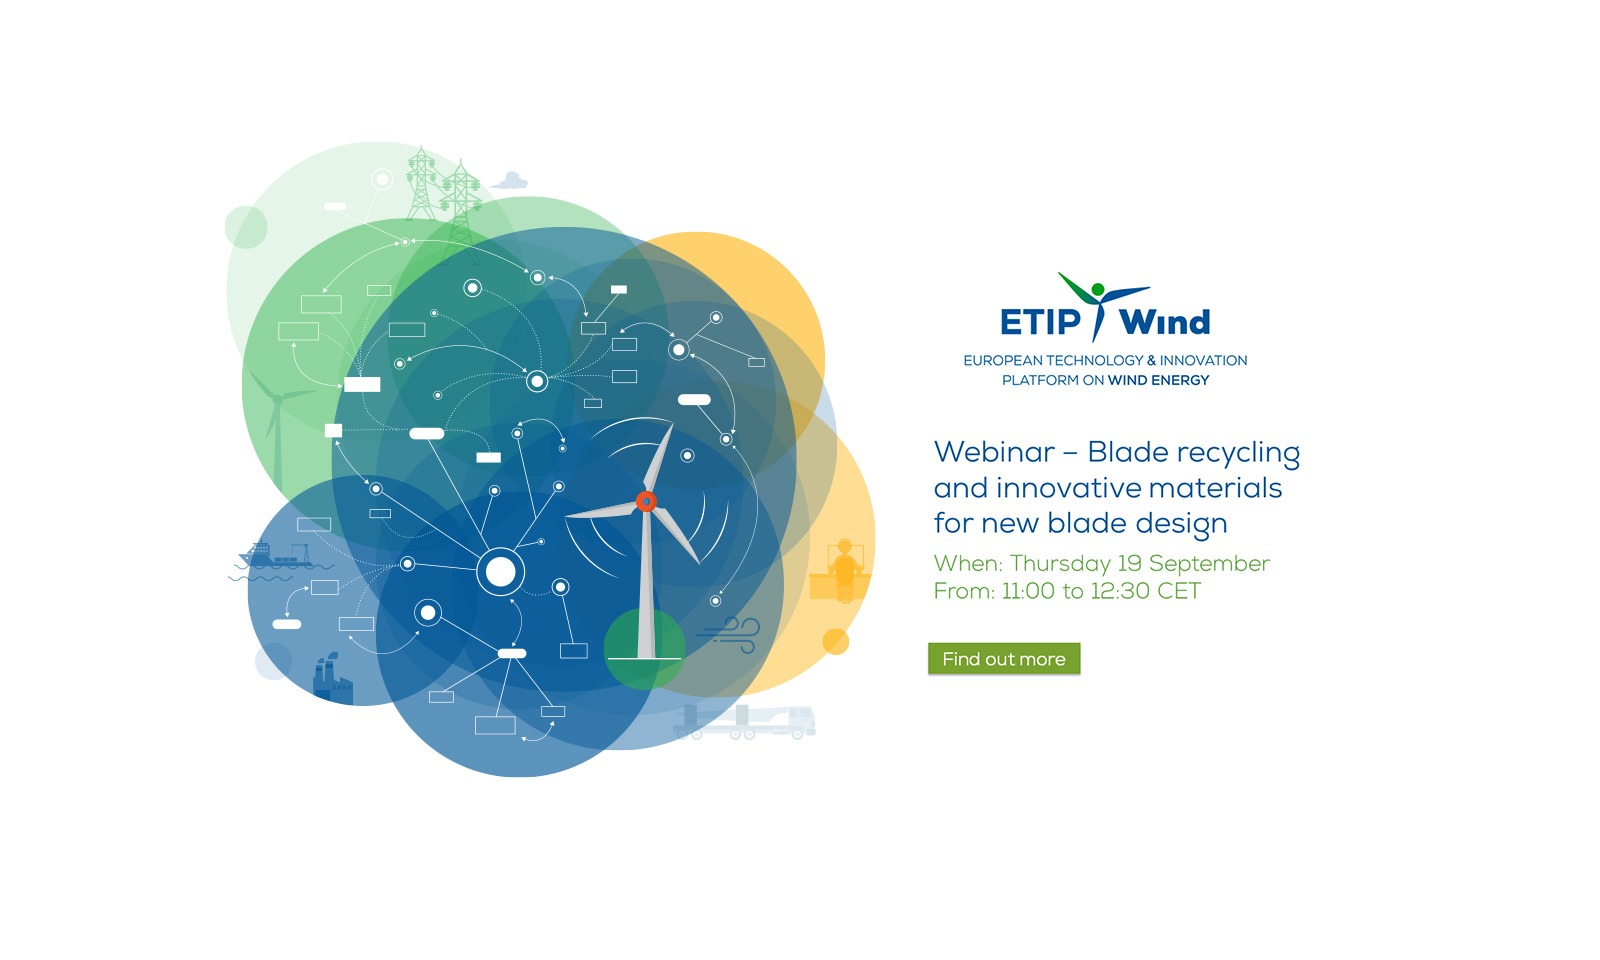 ETIPWind – European Technology and Innovation Platform on